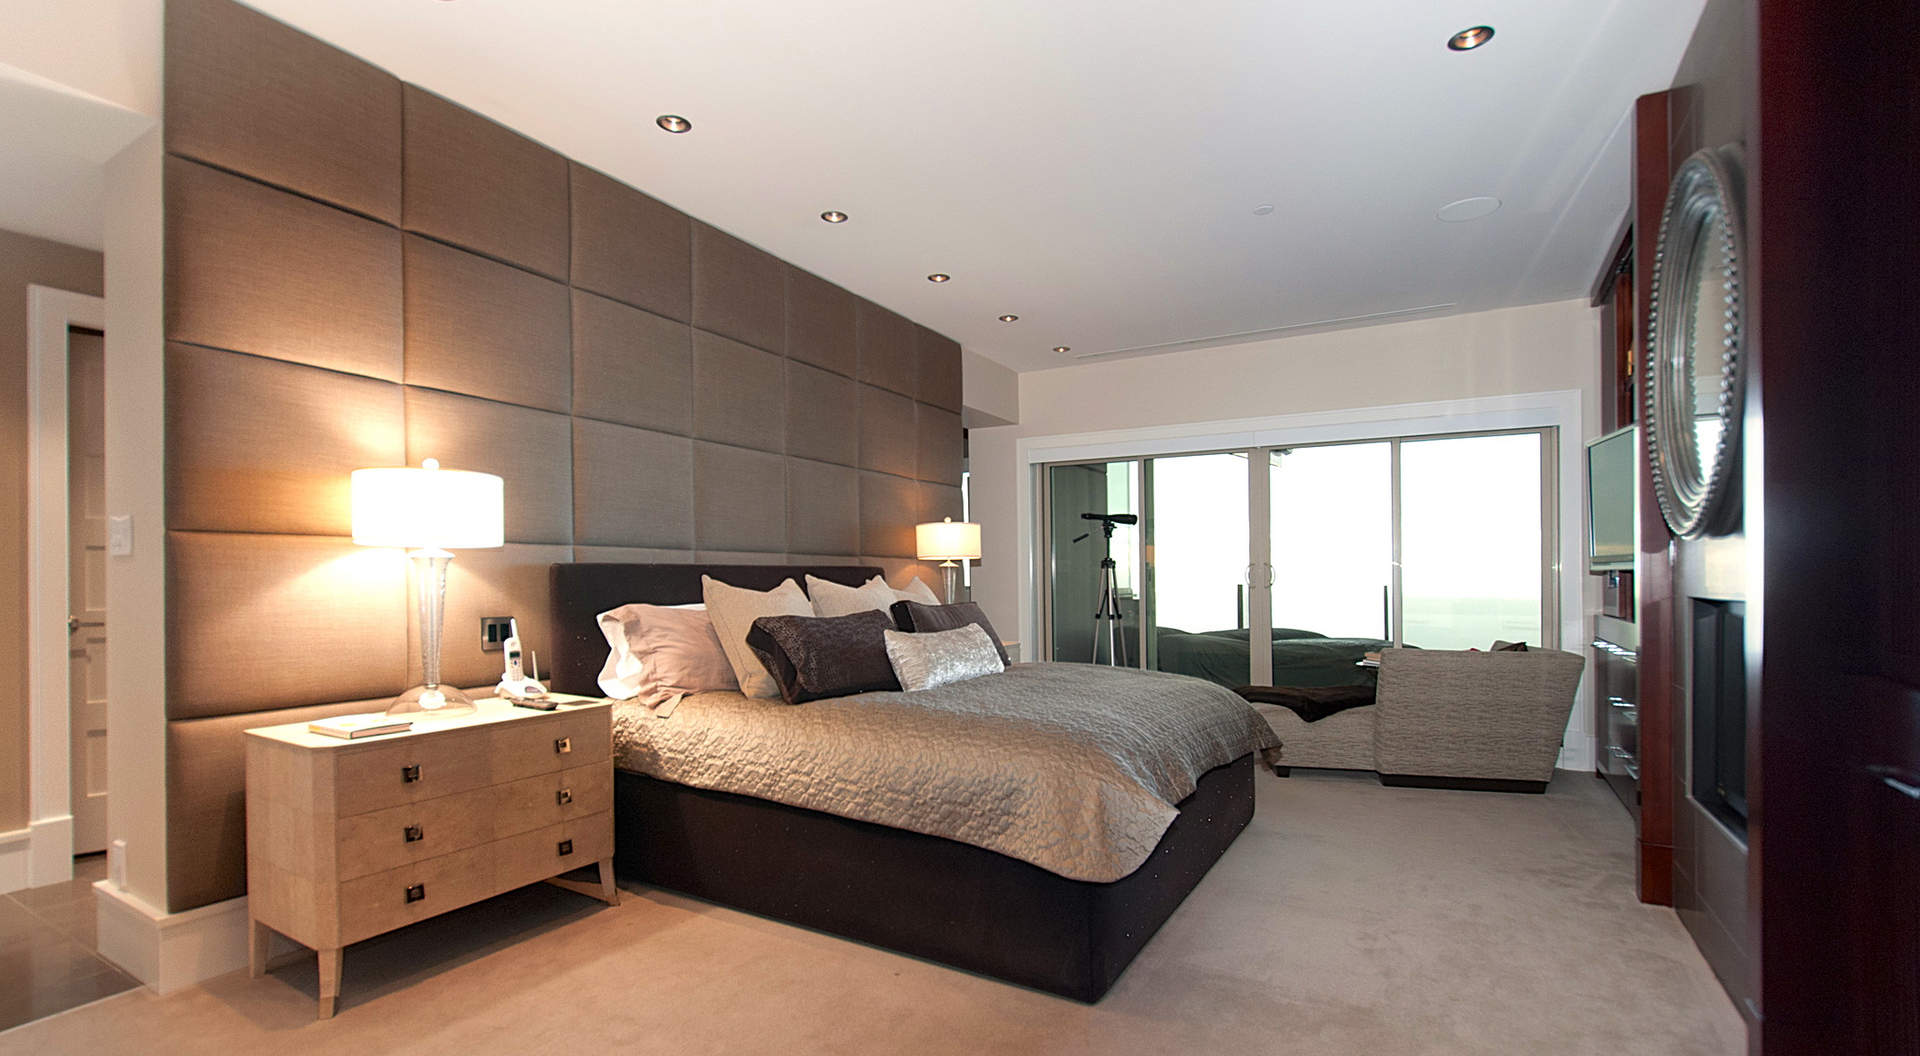 Penthouse master bedroom interior design ideas for Master bedroom interior designs